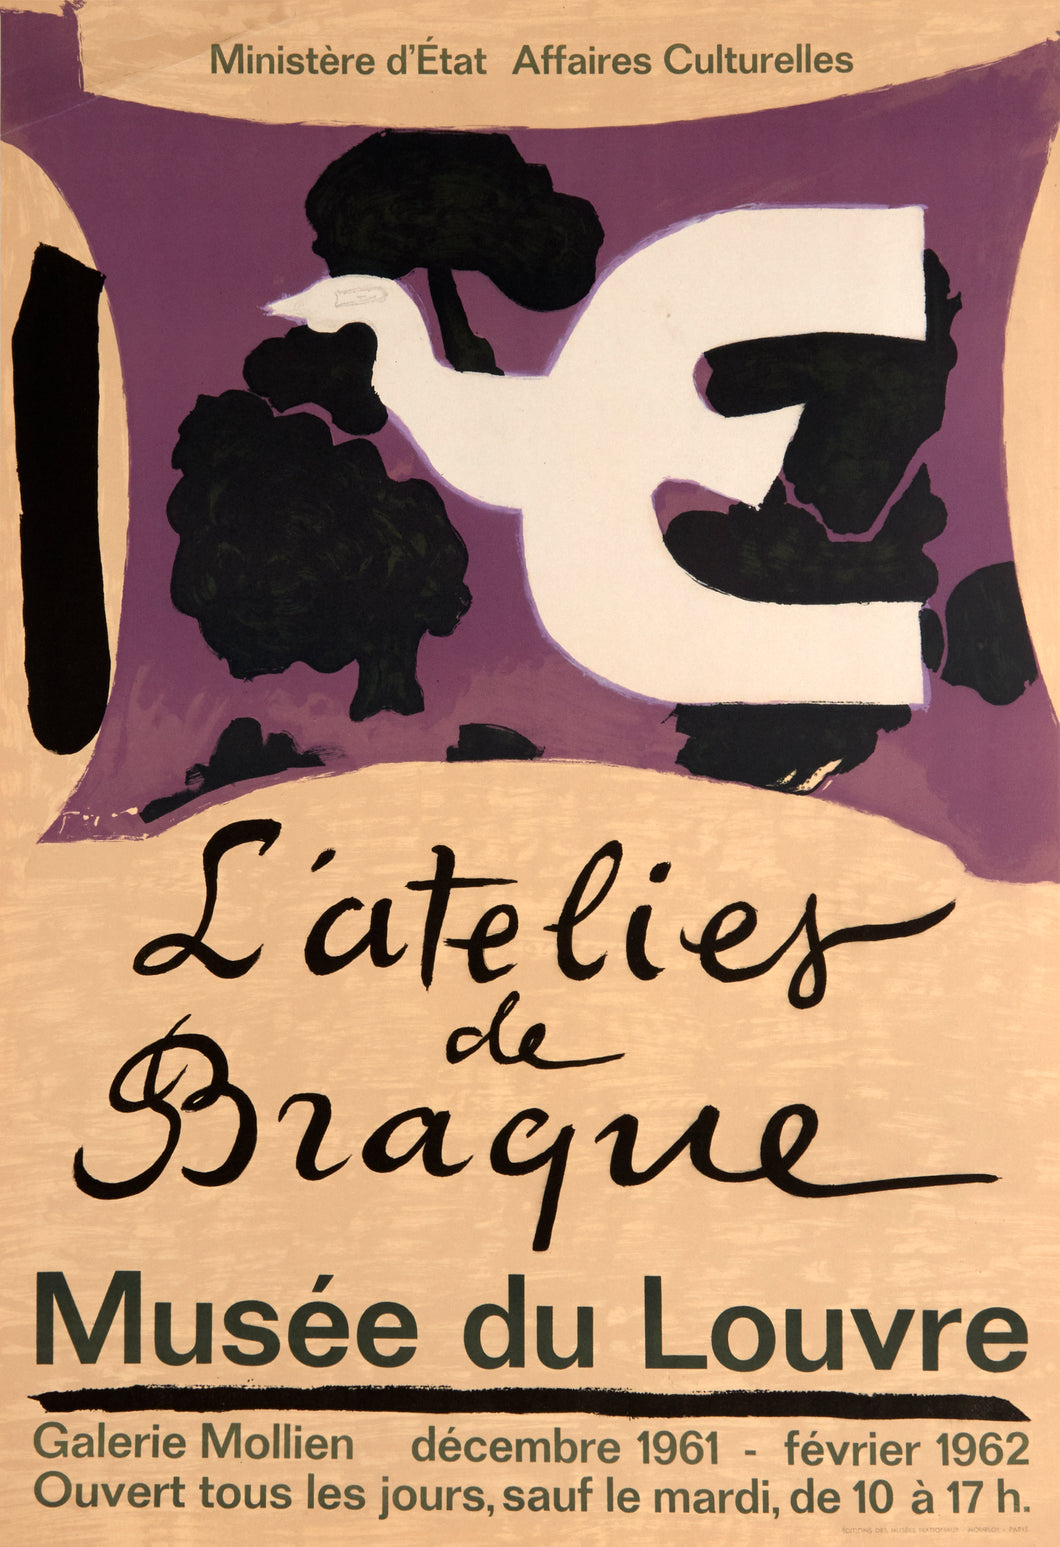 L'atelier de Braque by Georges Braque